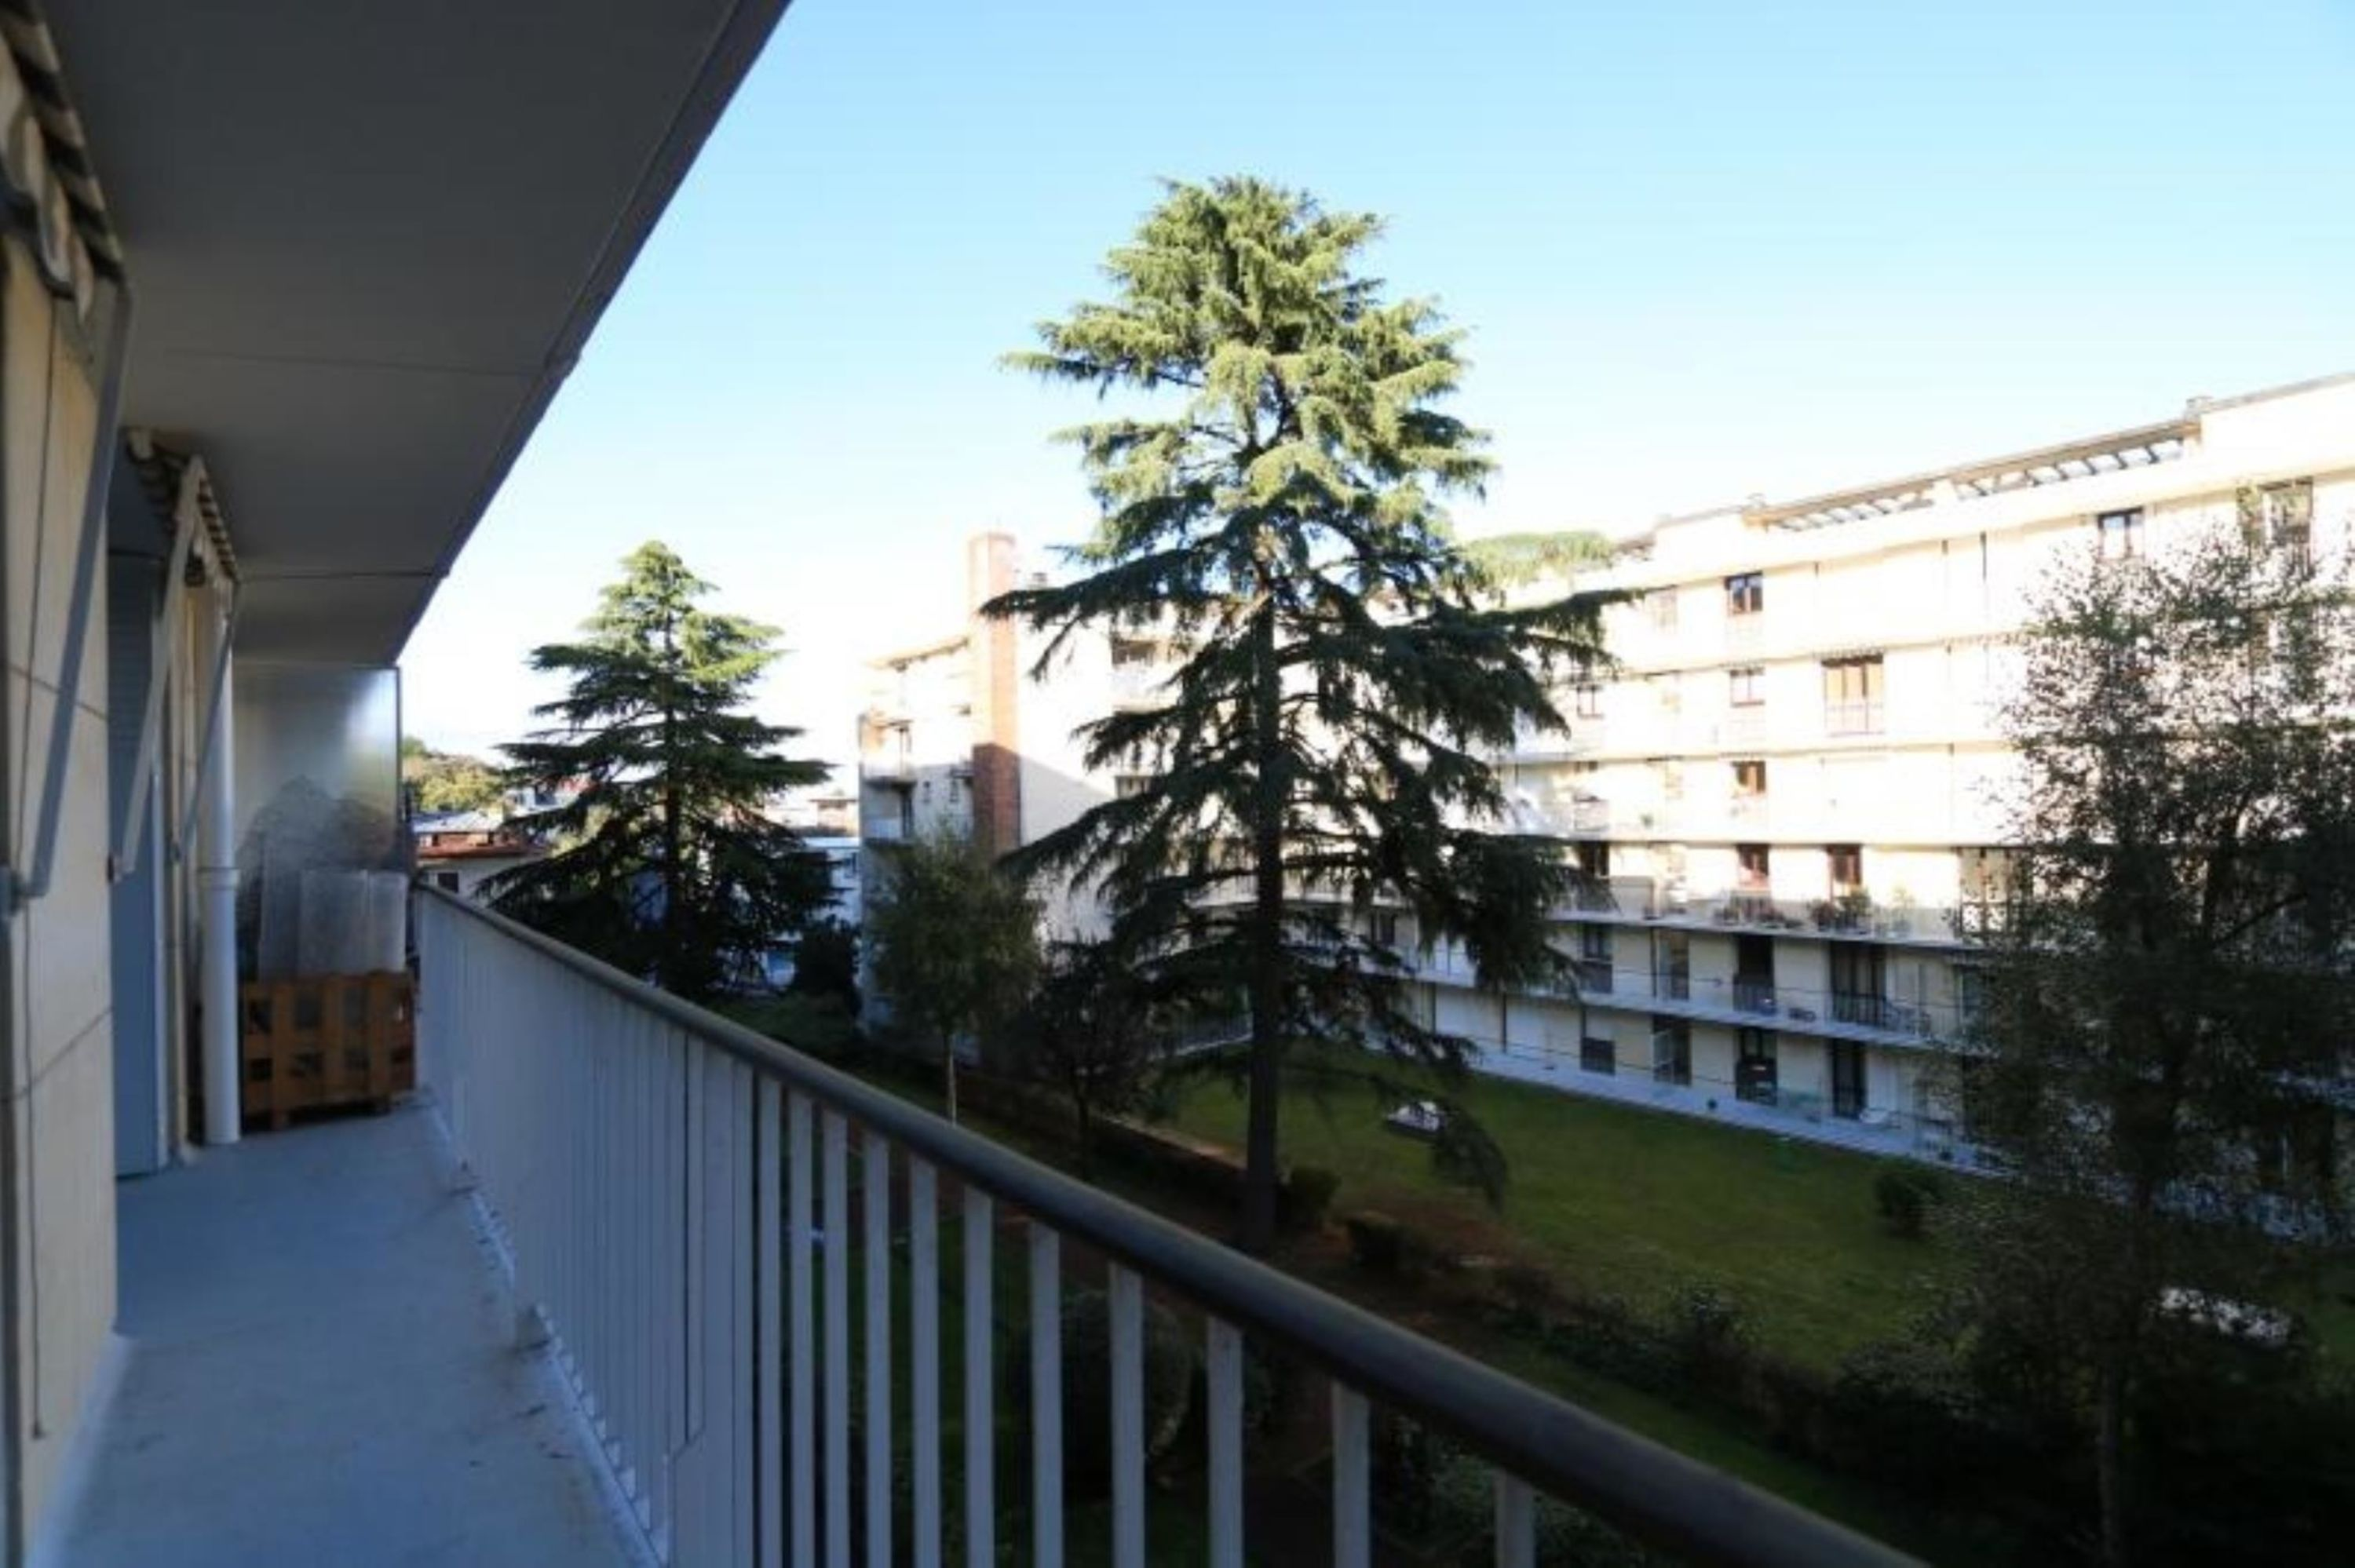 agence immobilière sevres 92 le chesnay 78 achat vente location appartement maison immobilier LMHT ANF WCPFOFGV